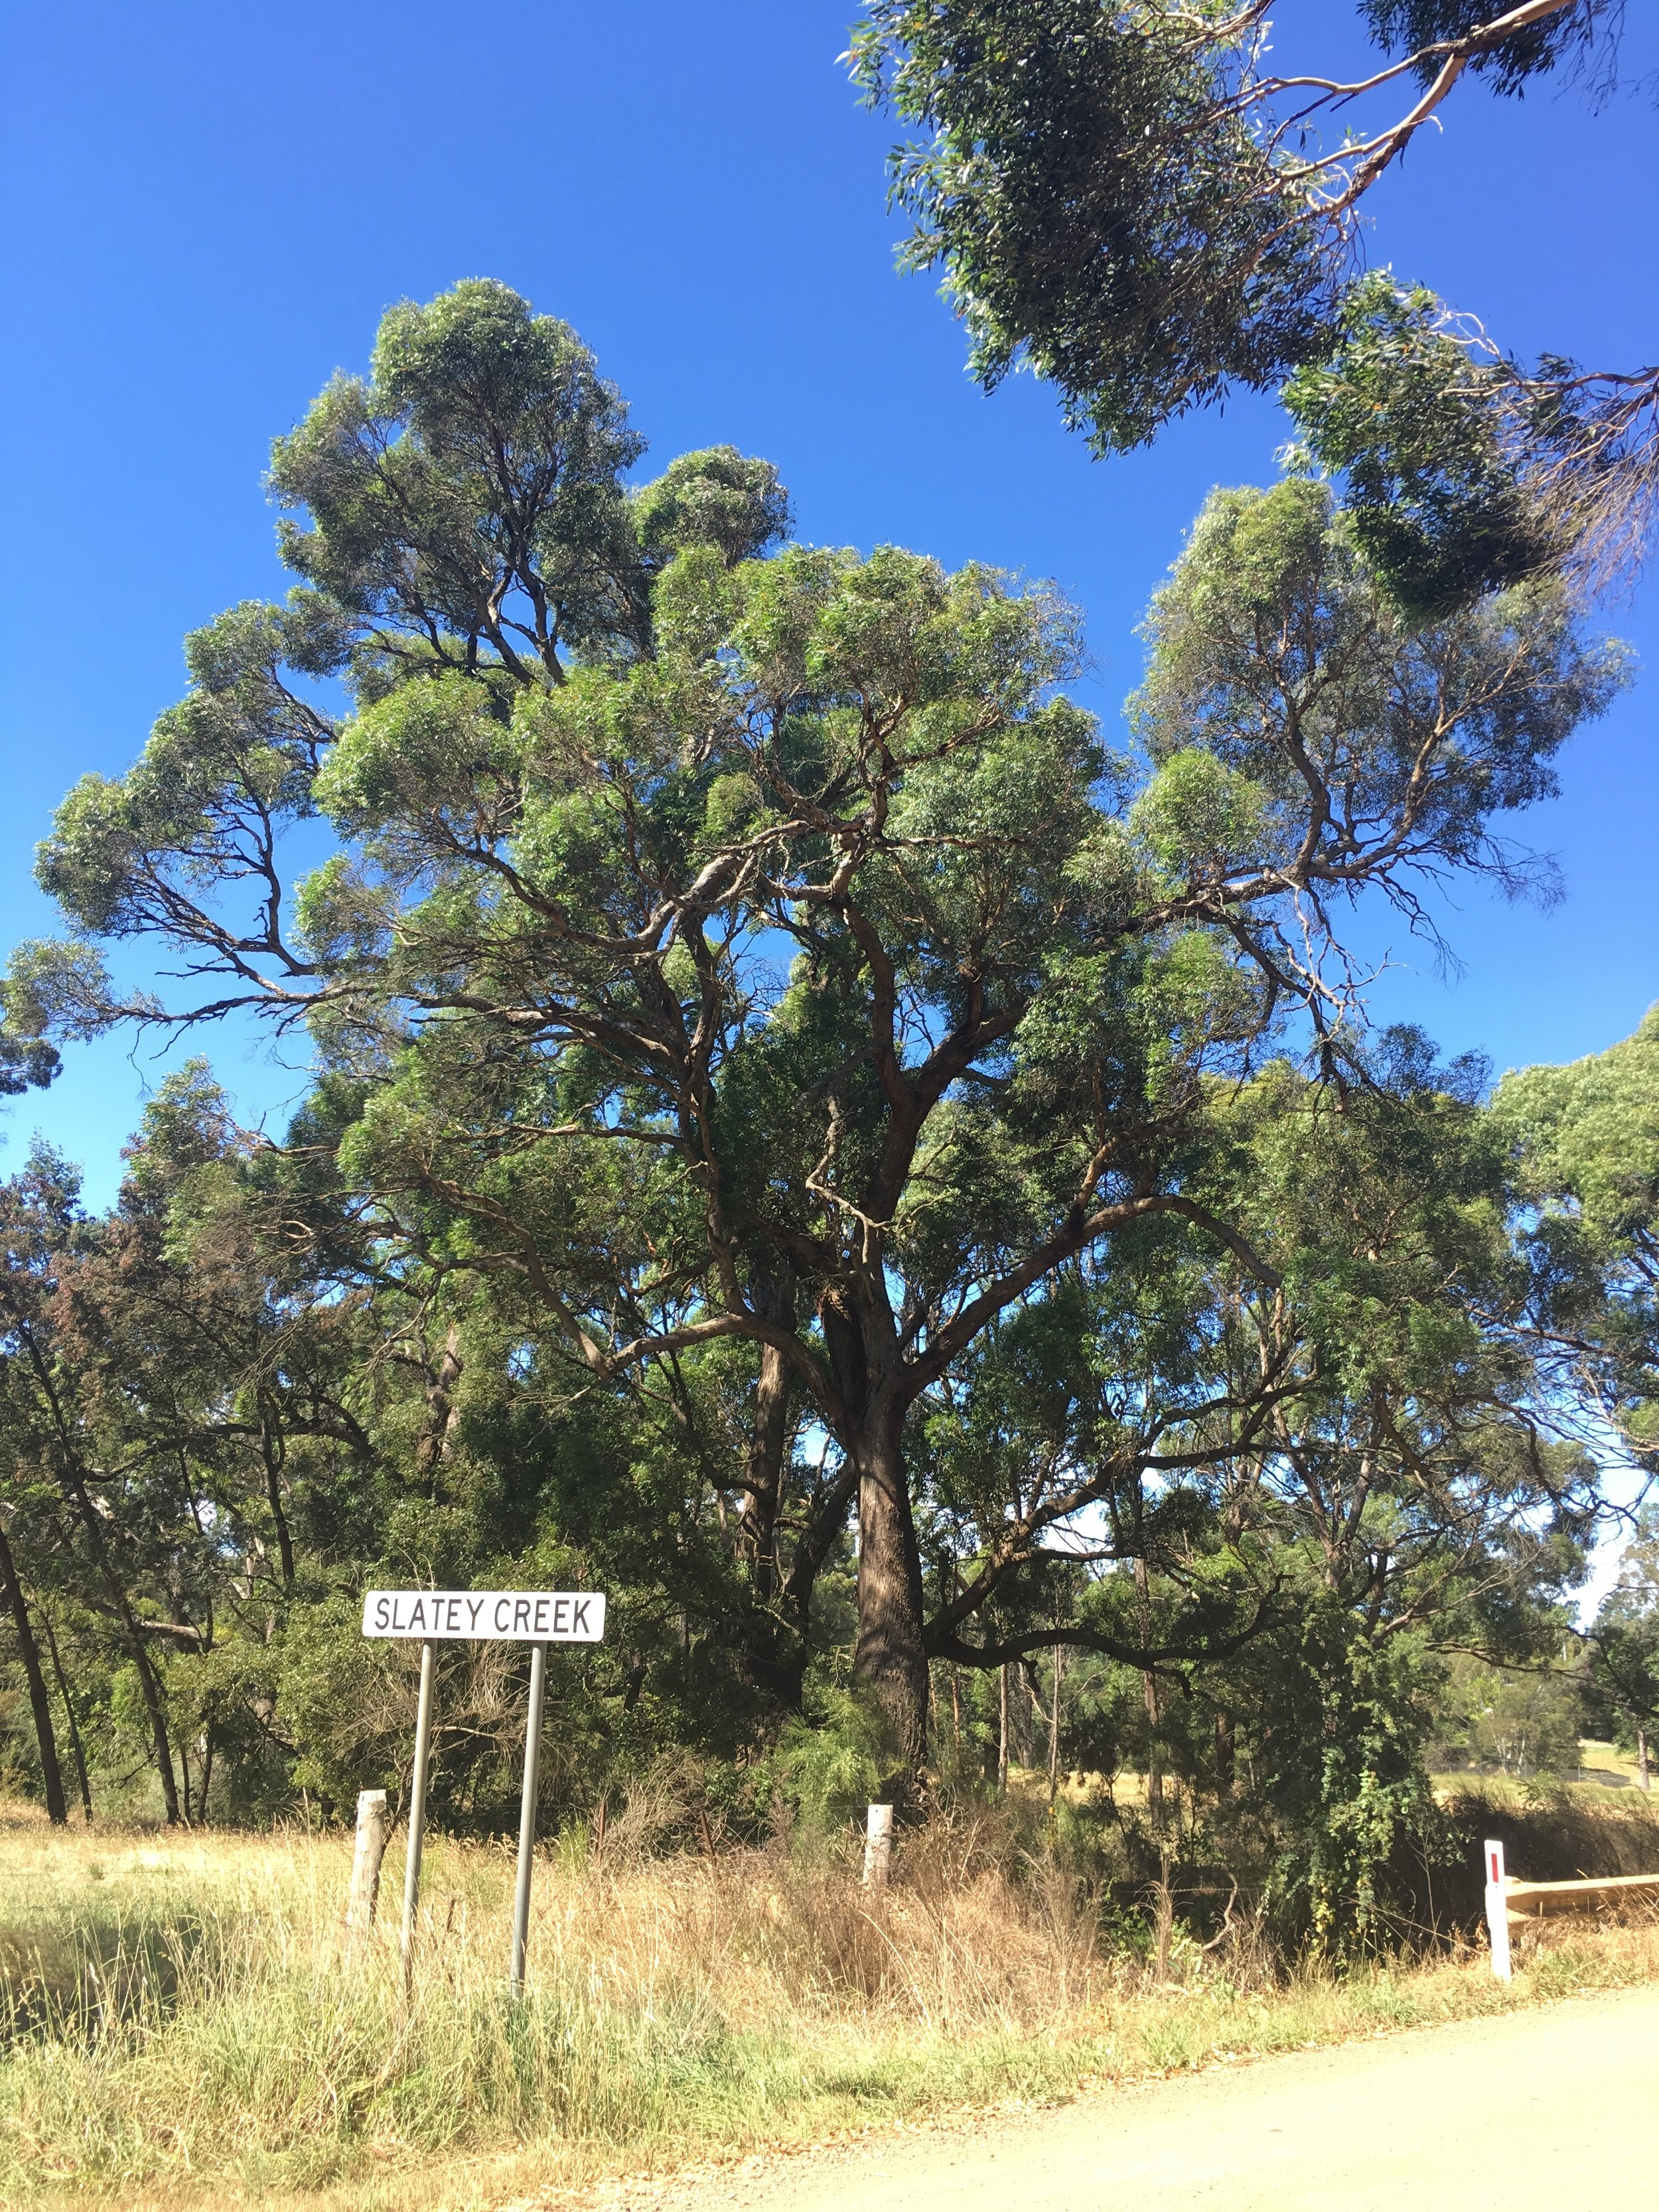 Black Gum grows on the banks of the Five Mile and Slatey Creeks in Woodend.